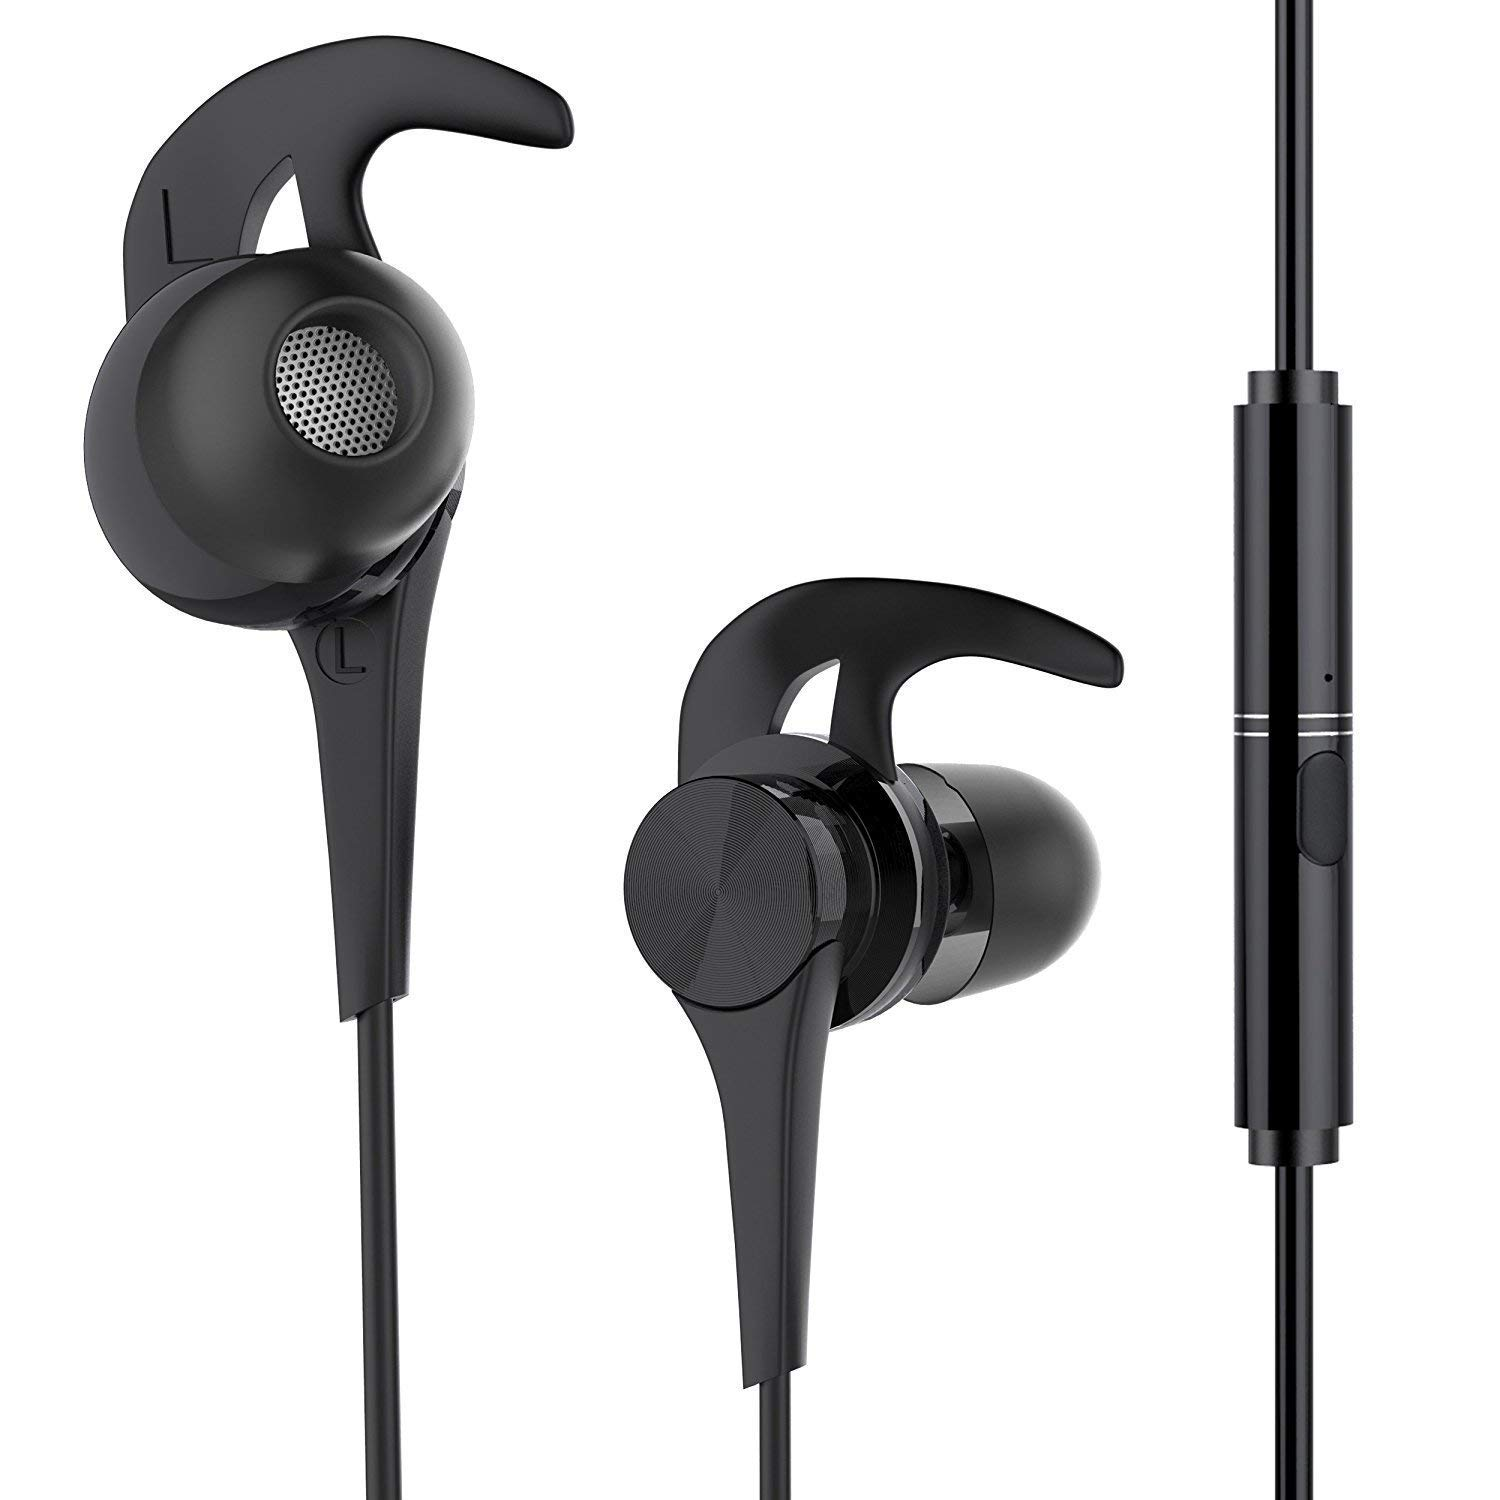 Earphones, BYZ Wired Earbuds with Mic Volume Control,Sweatproof Stereo Bass Noise Cancelling Headphones for Running